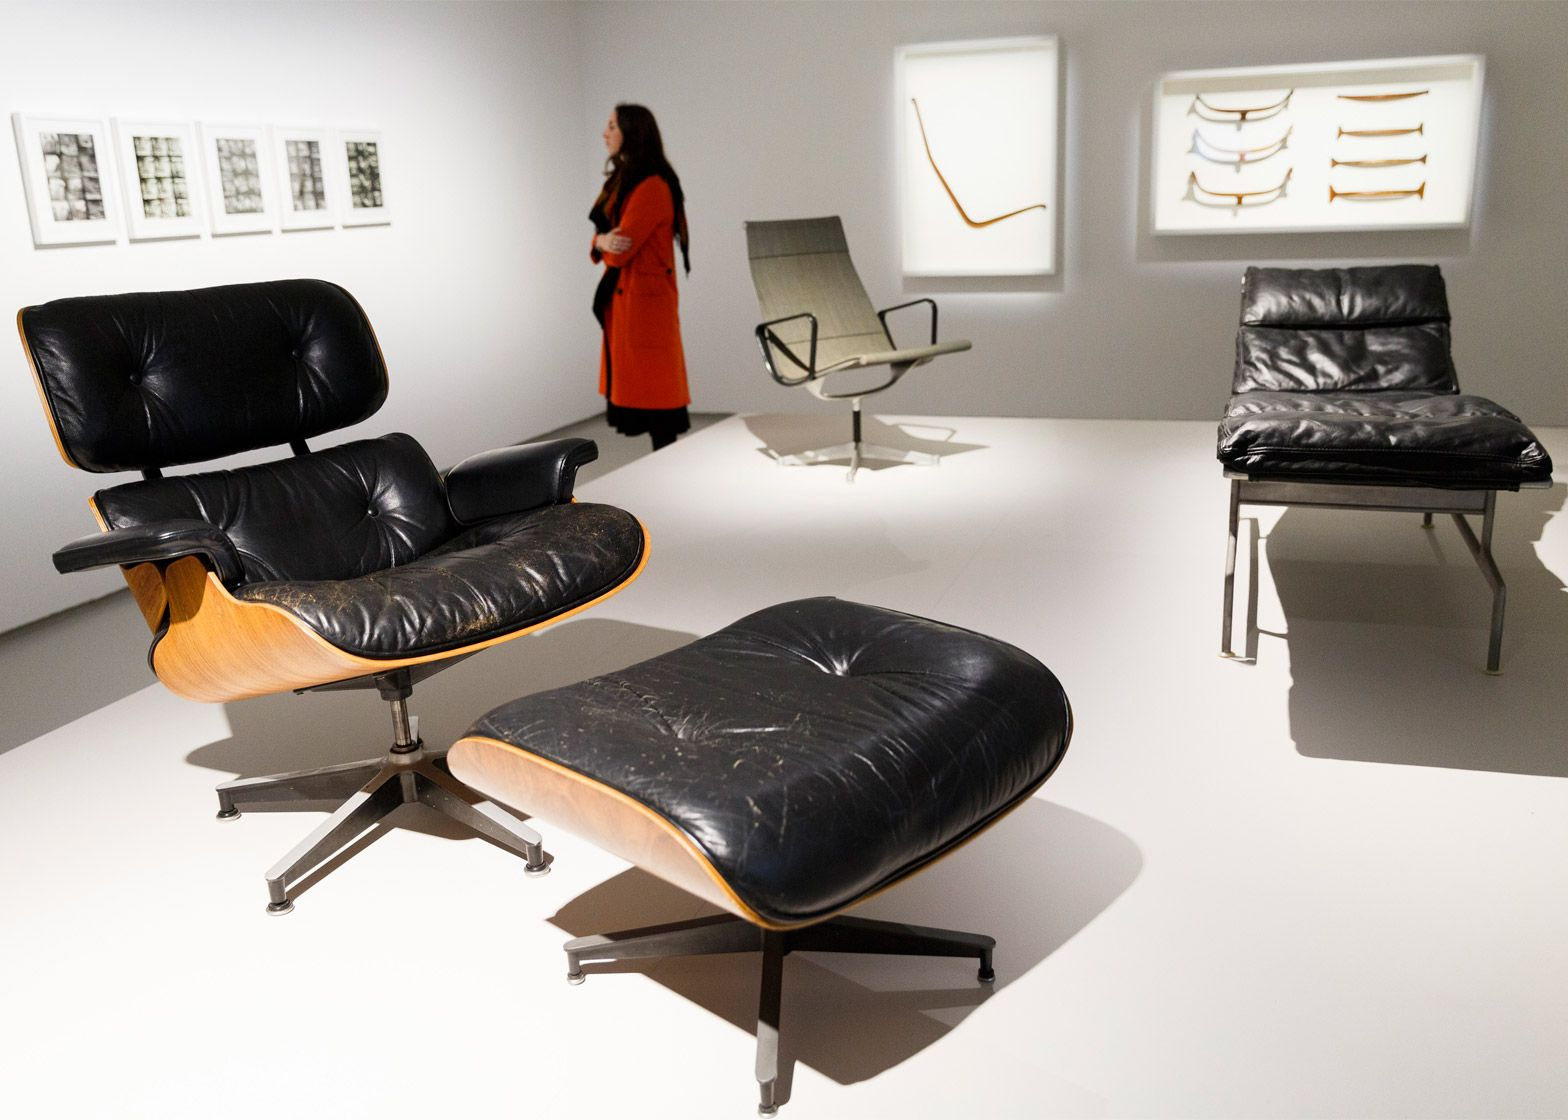 The World of Charles and Ray Eames exhibition has opened at the Barbican.